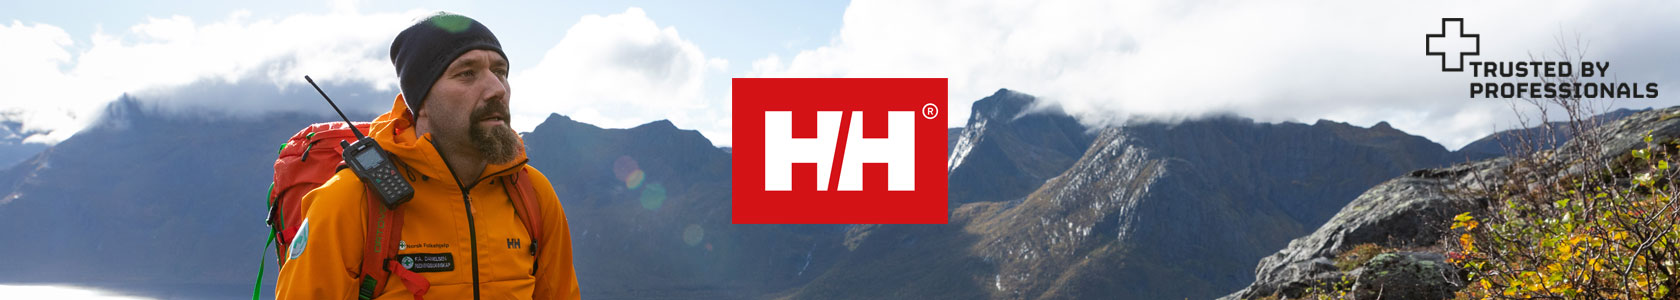 A man wearing a orange Helly Hansen jacket, a scenery of mountains touching the clouds and the Helly Hansen logo in the centre